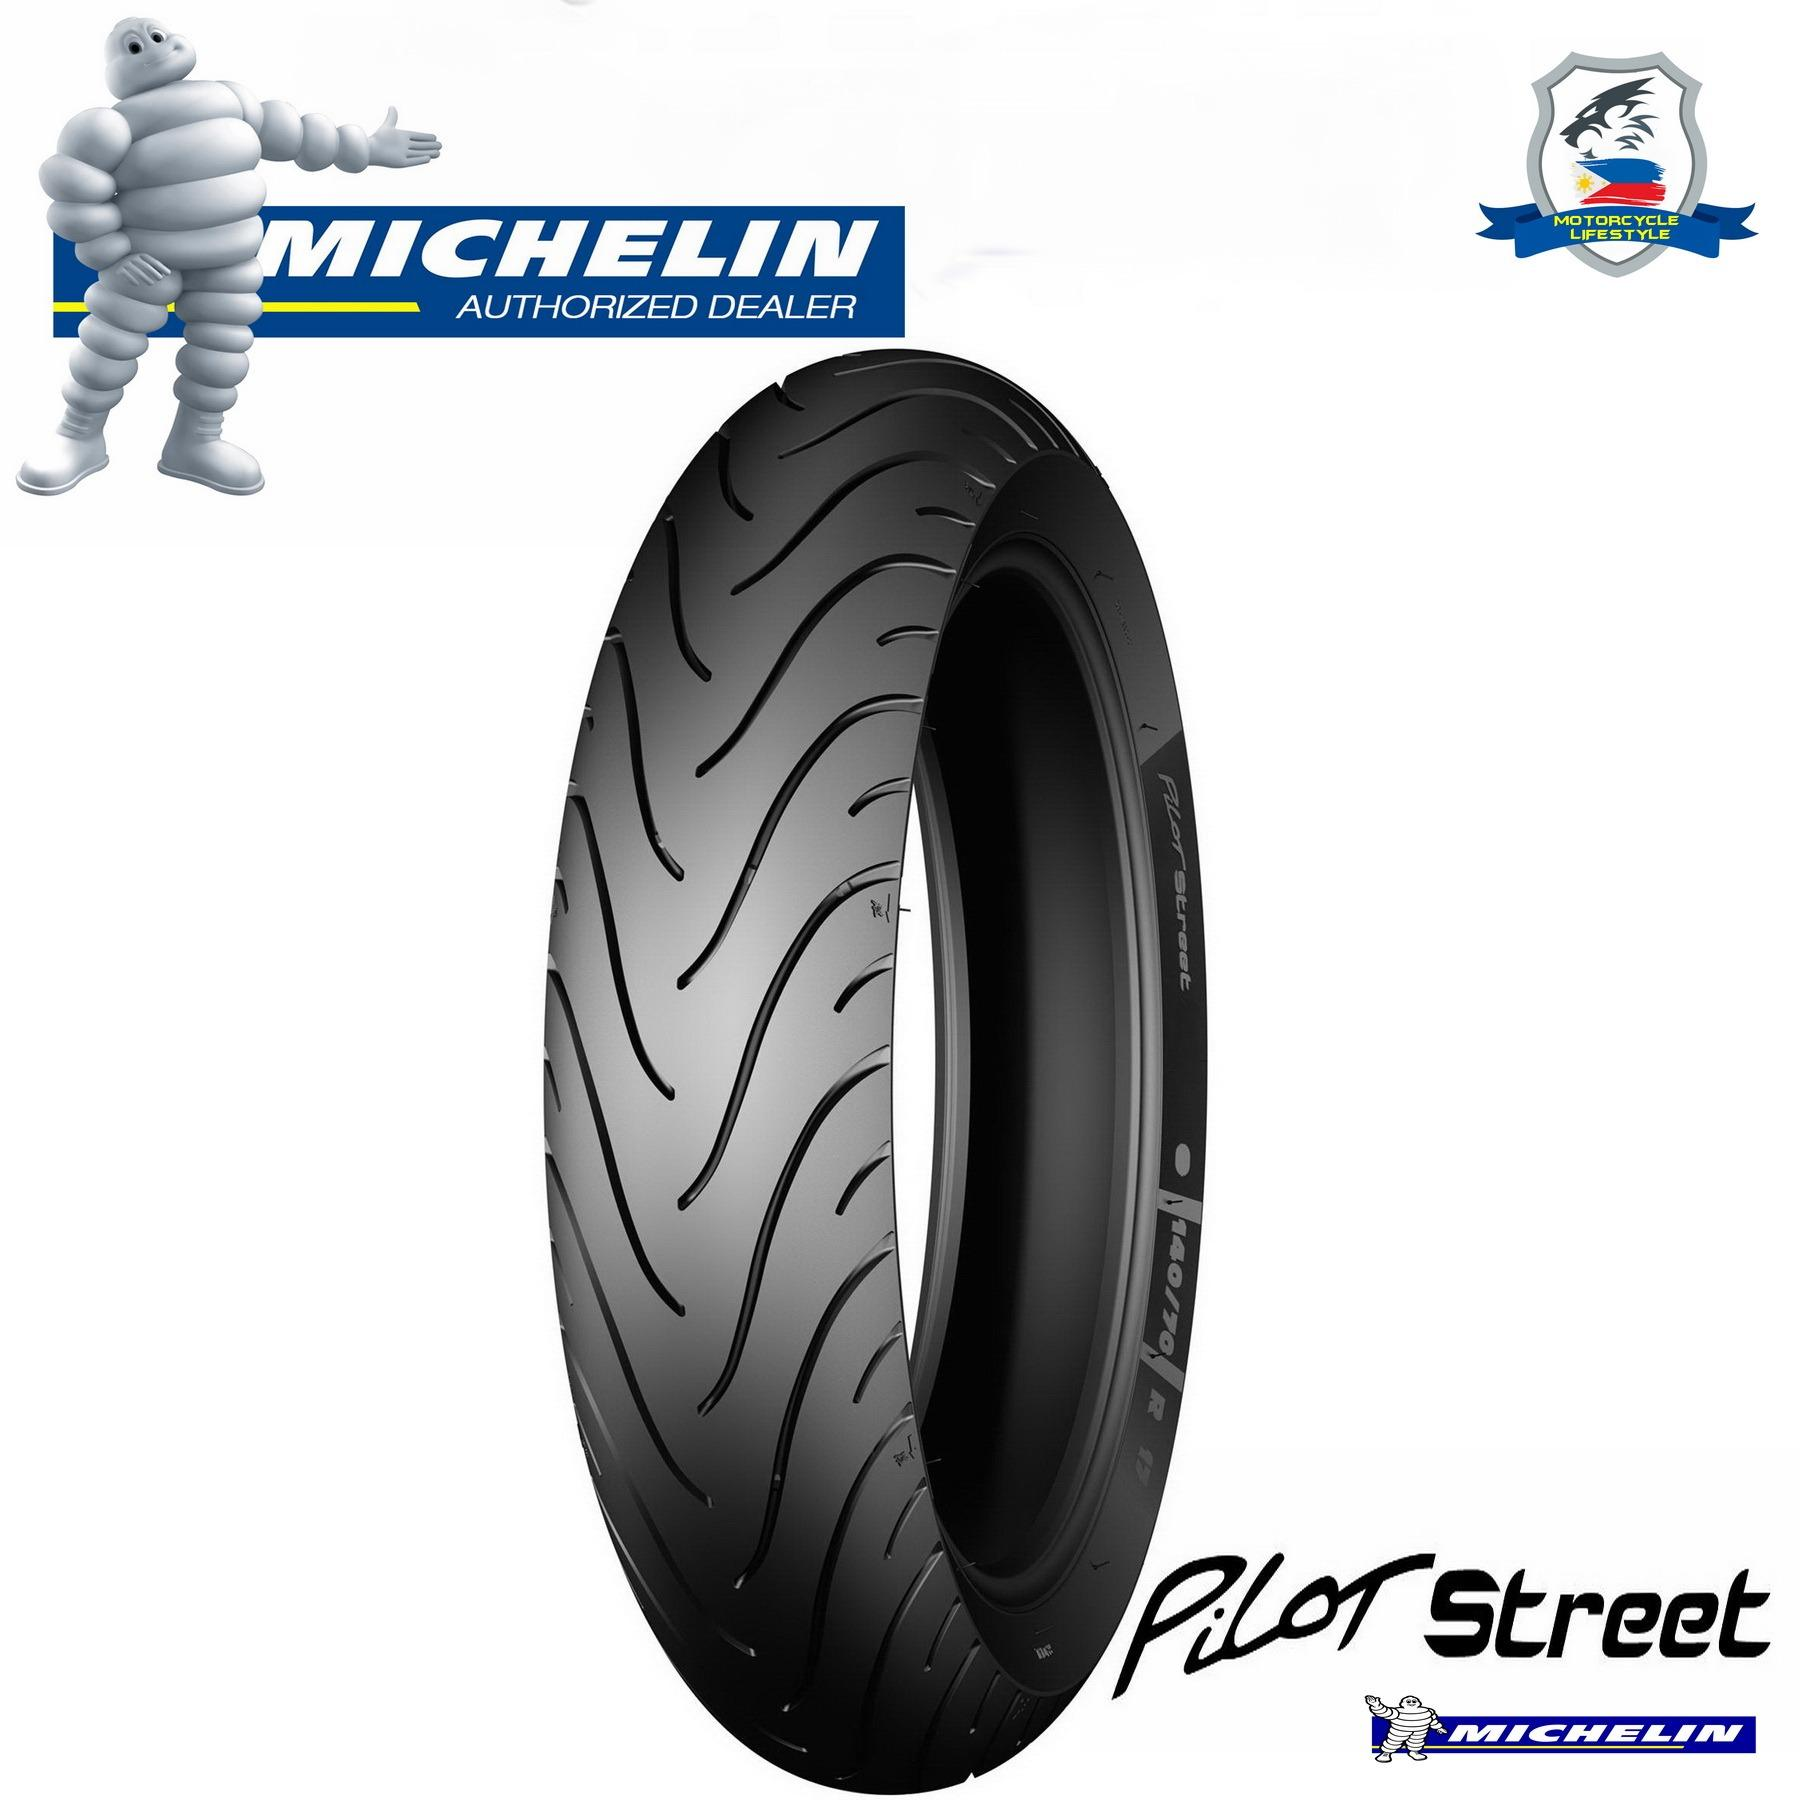 MICHELIN Philippines MICHELIN price list Motorcycle Tires for